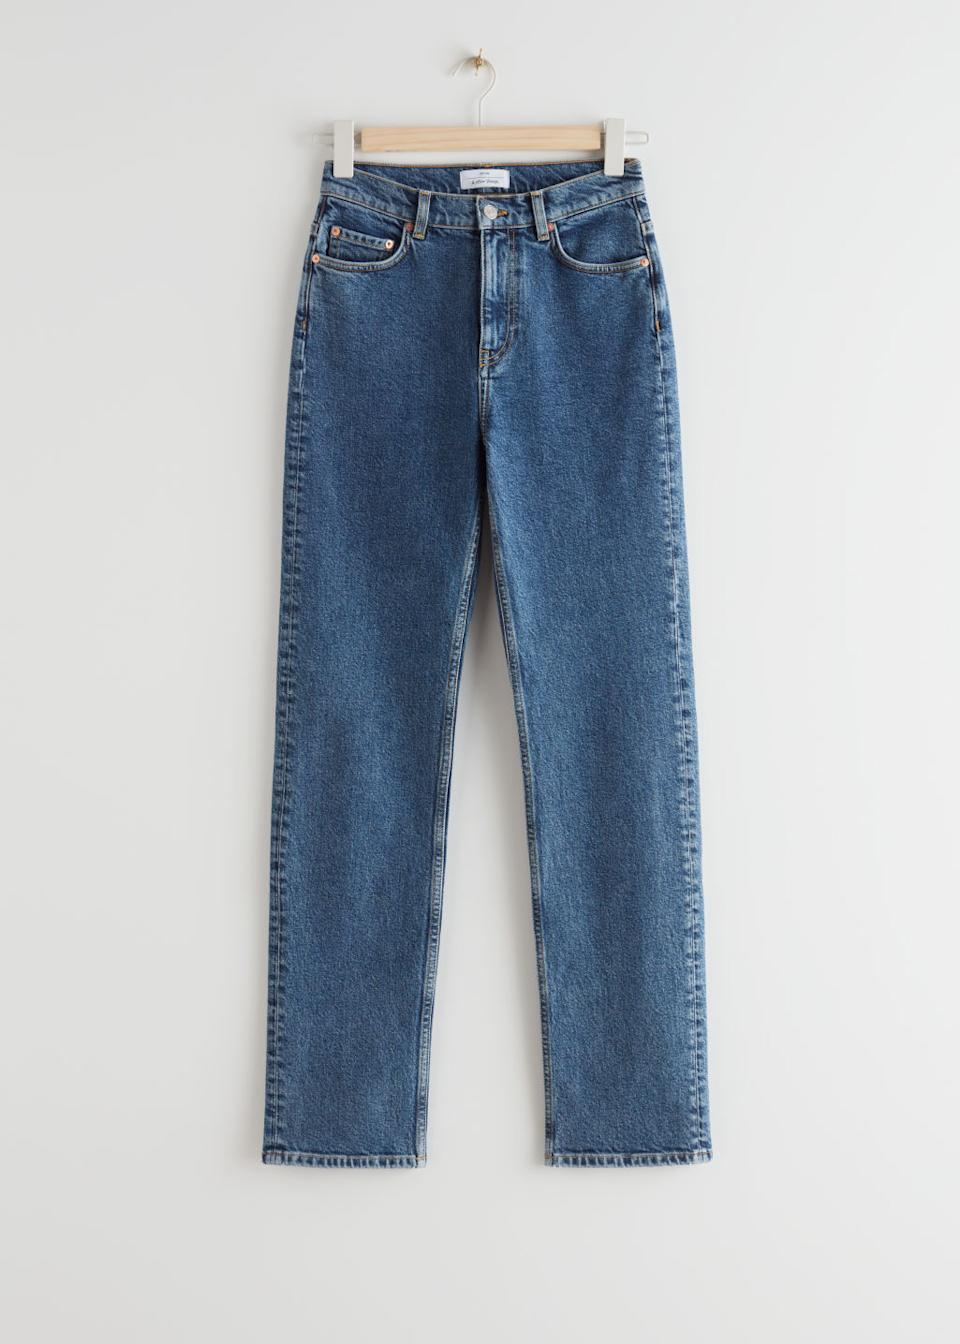 Jean Favourite Cut & Other Stories